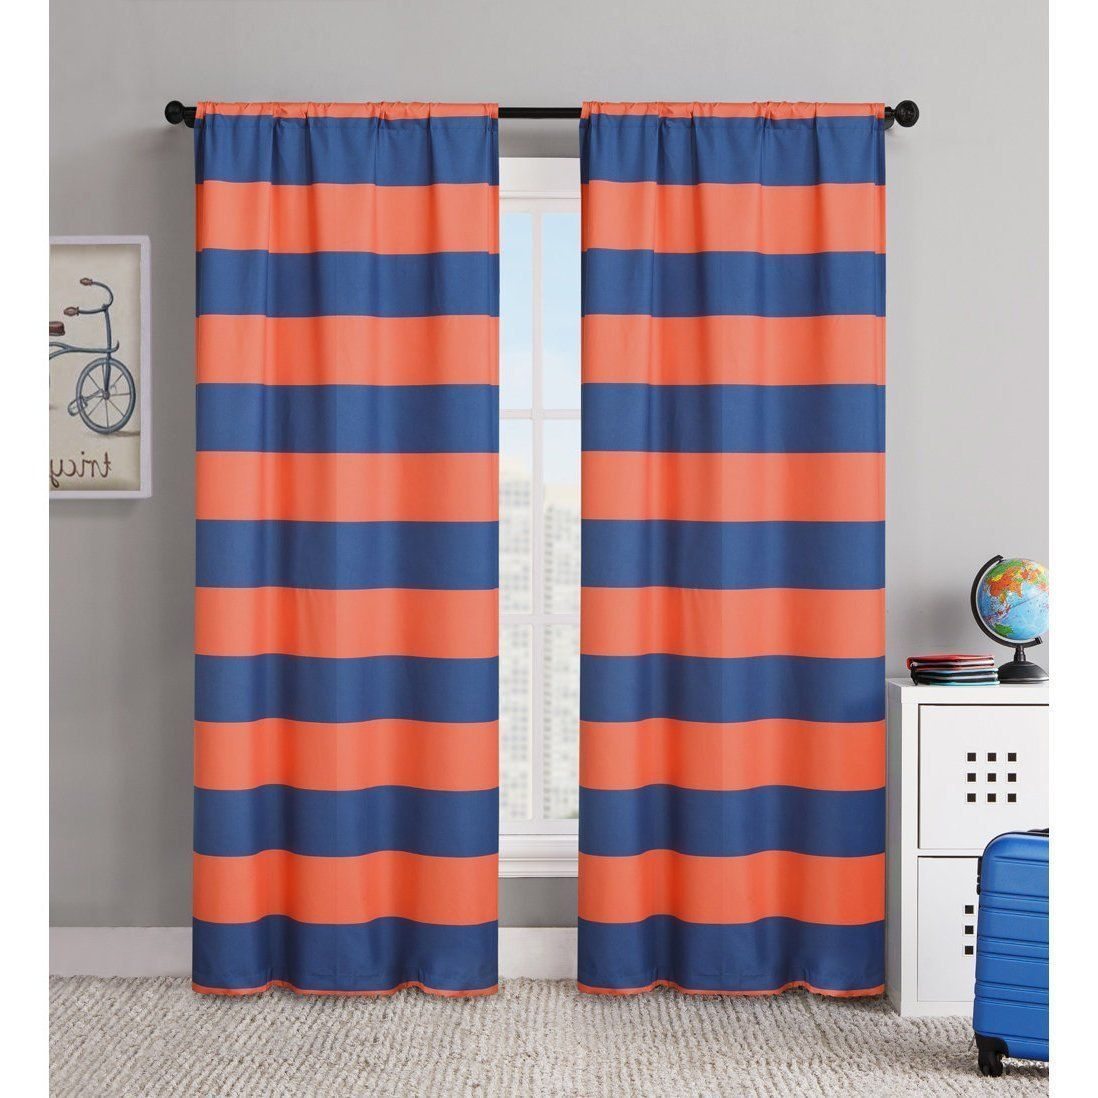 awful curtain full of pakistan burnt curtains sheer size tangerine designs panels orange in